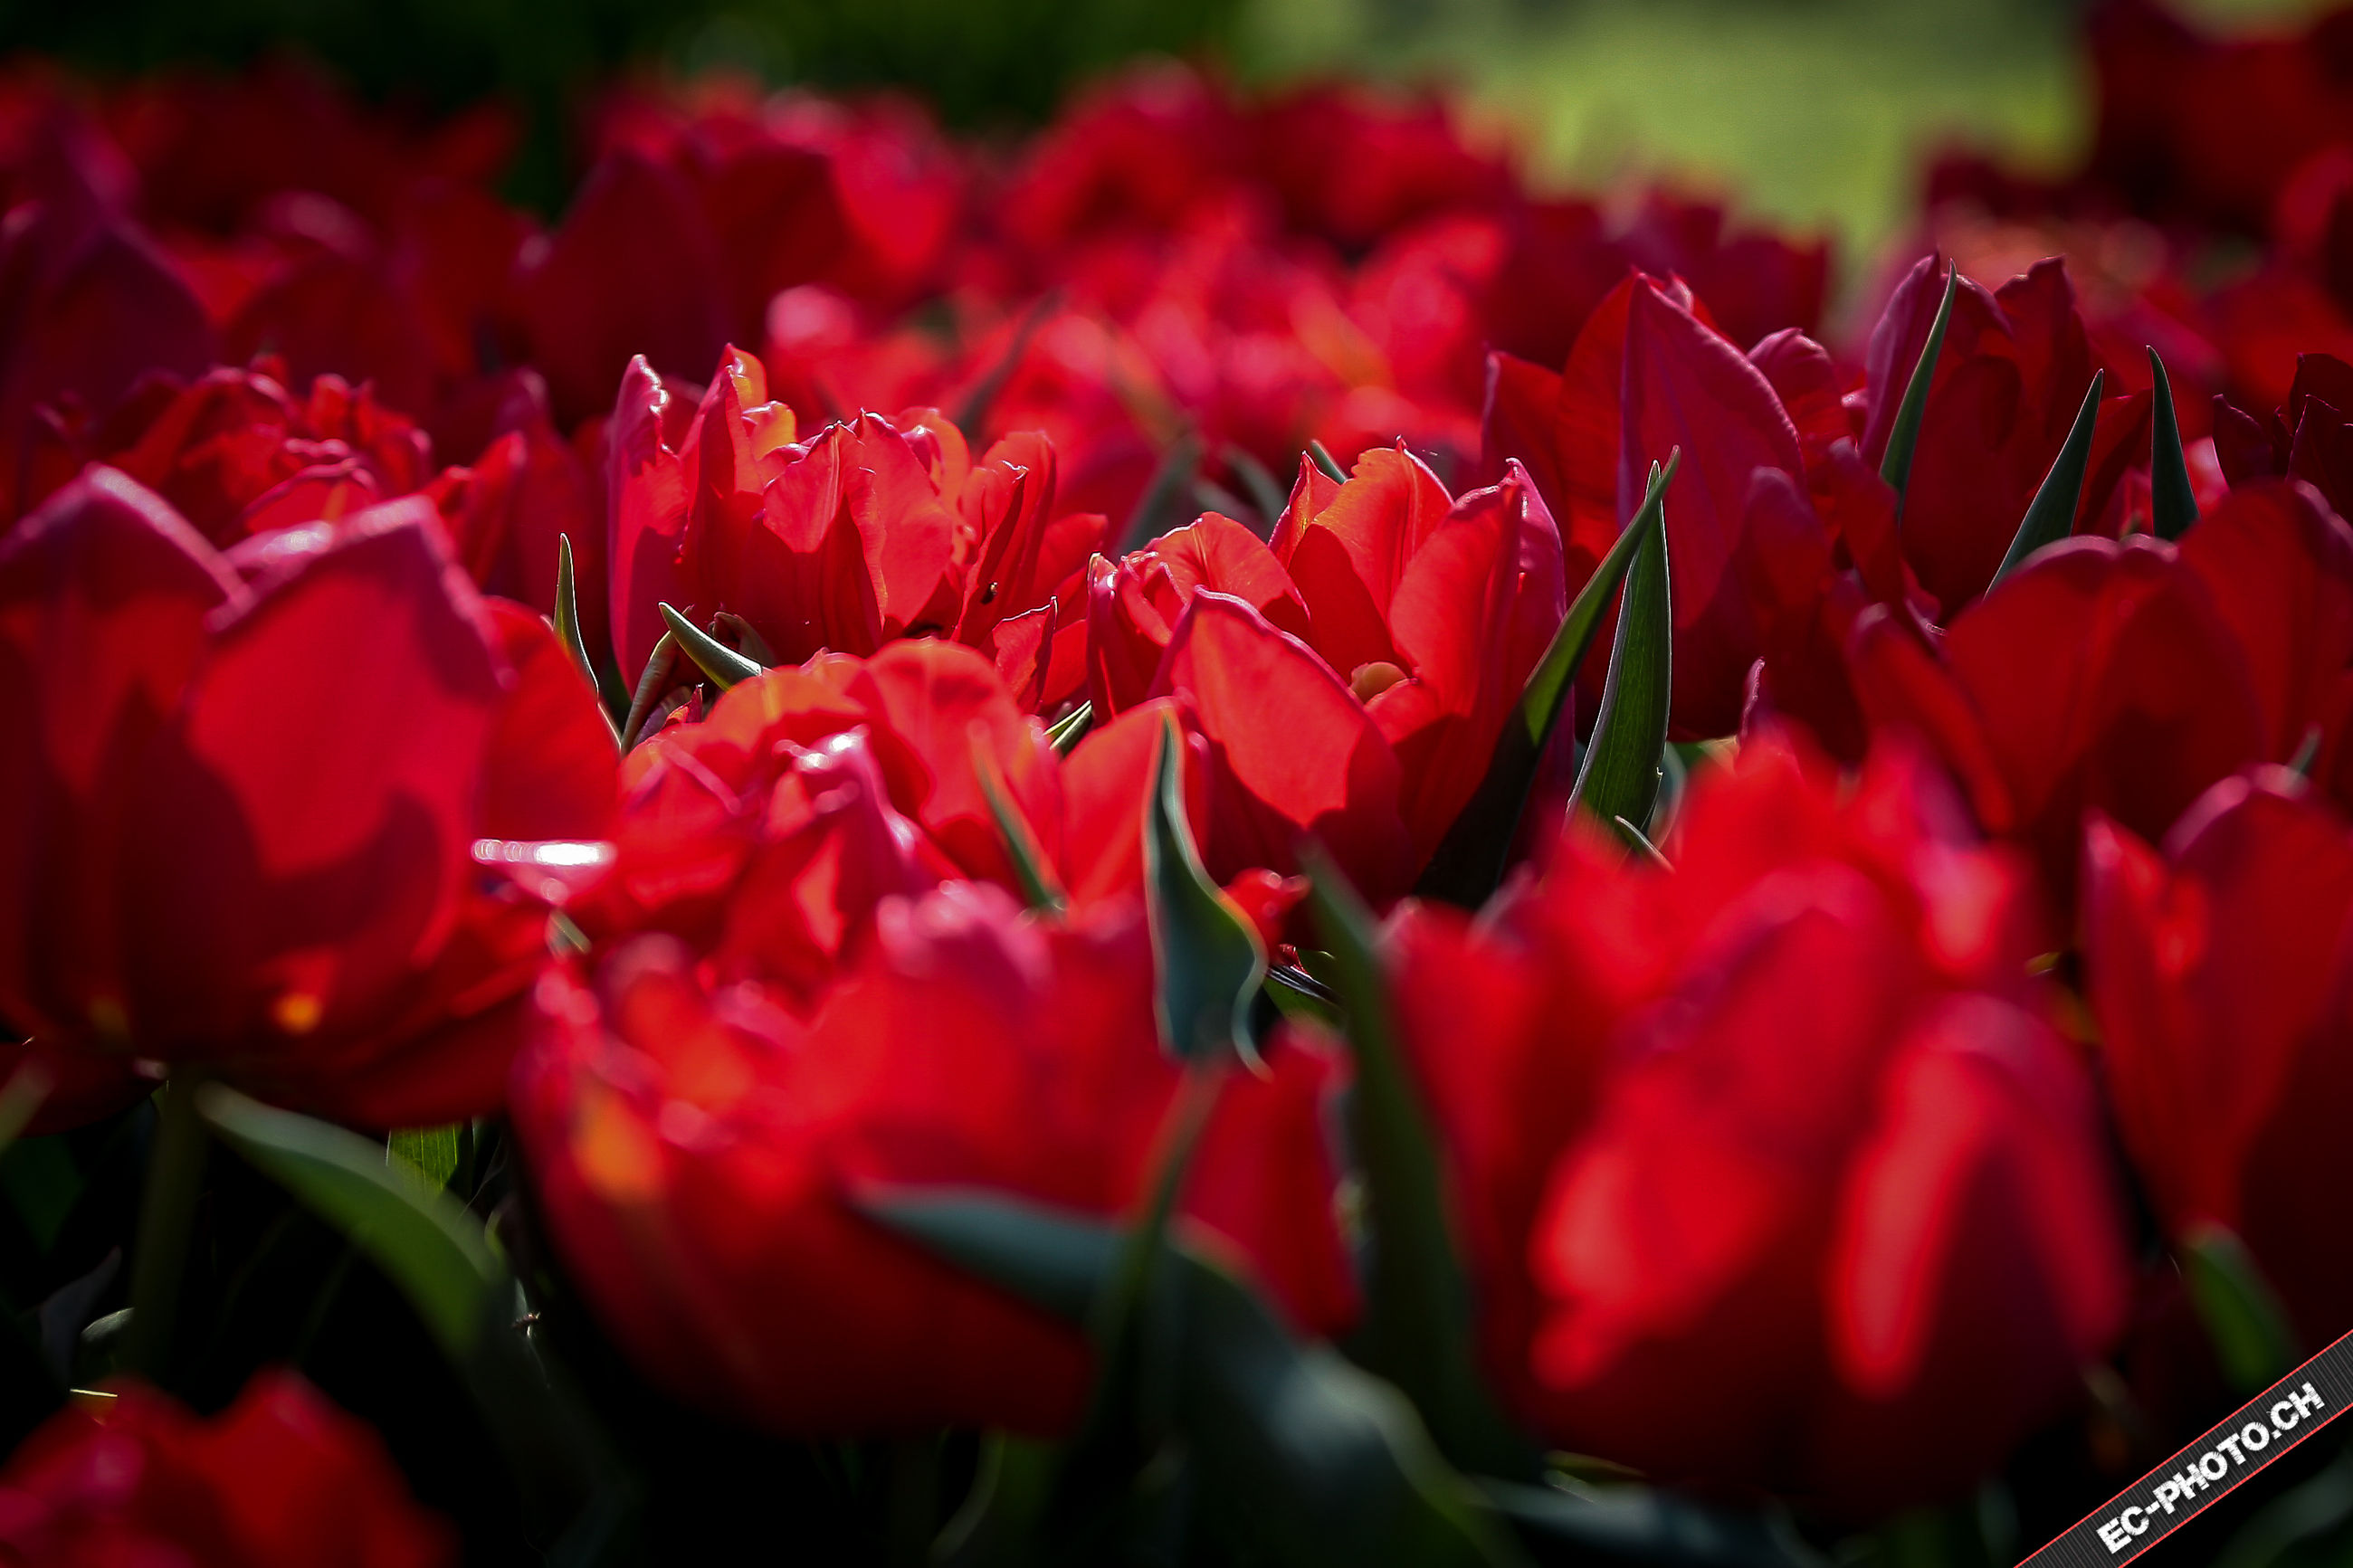 red, freshness, abundance, growth, close-up, focus on foreground, beauty in nature, selective focus, flower, leaf, nature, large group of objects, day, tulip, outdoors, no people, full frame, backgrounds, plant, fragility